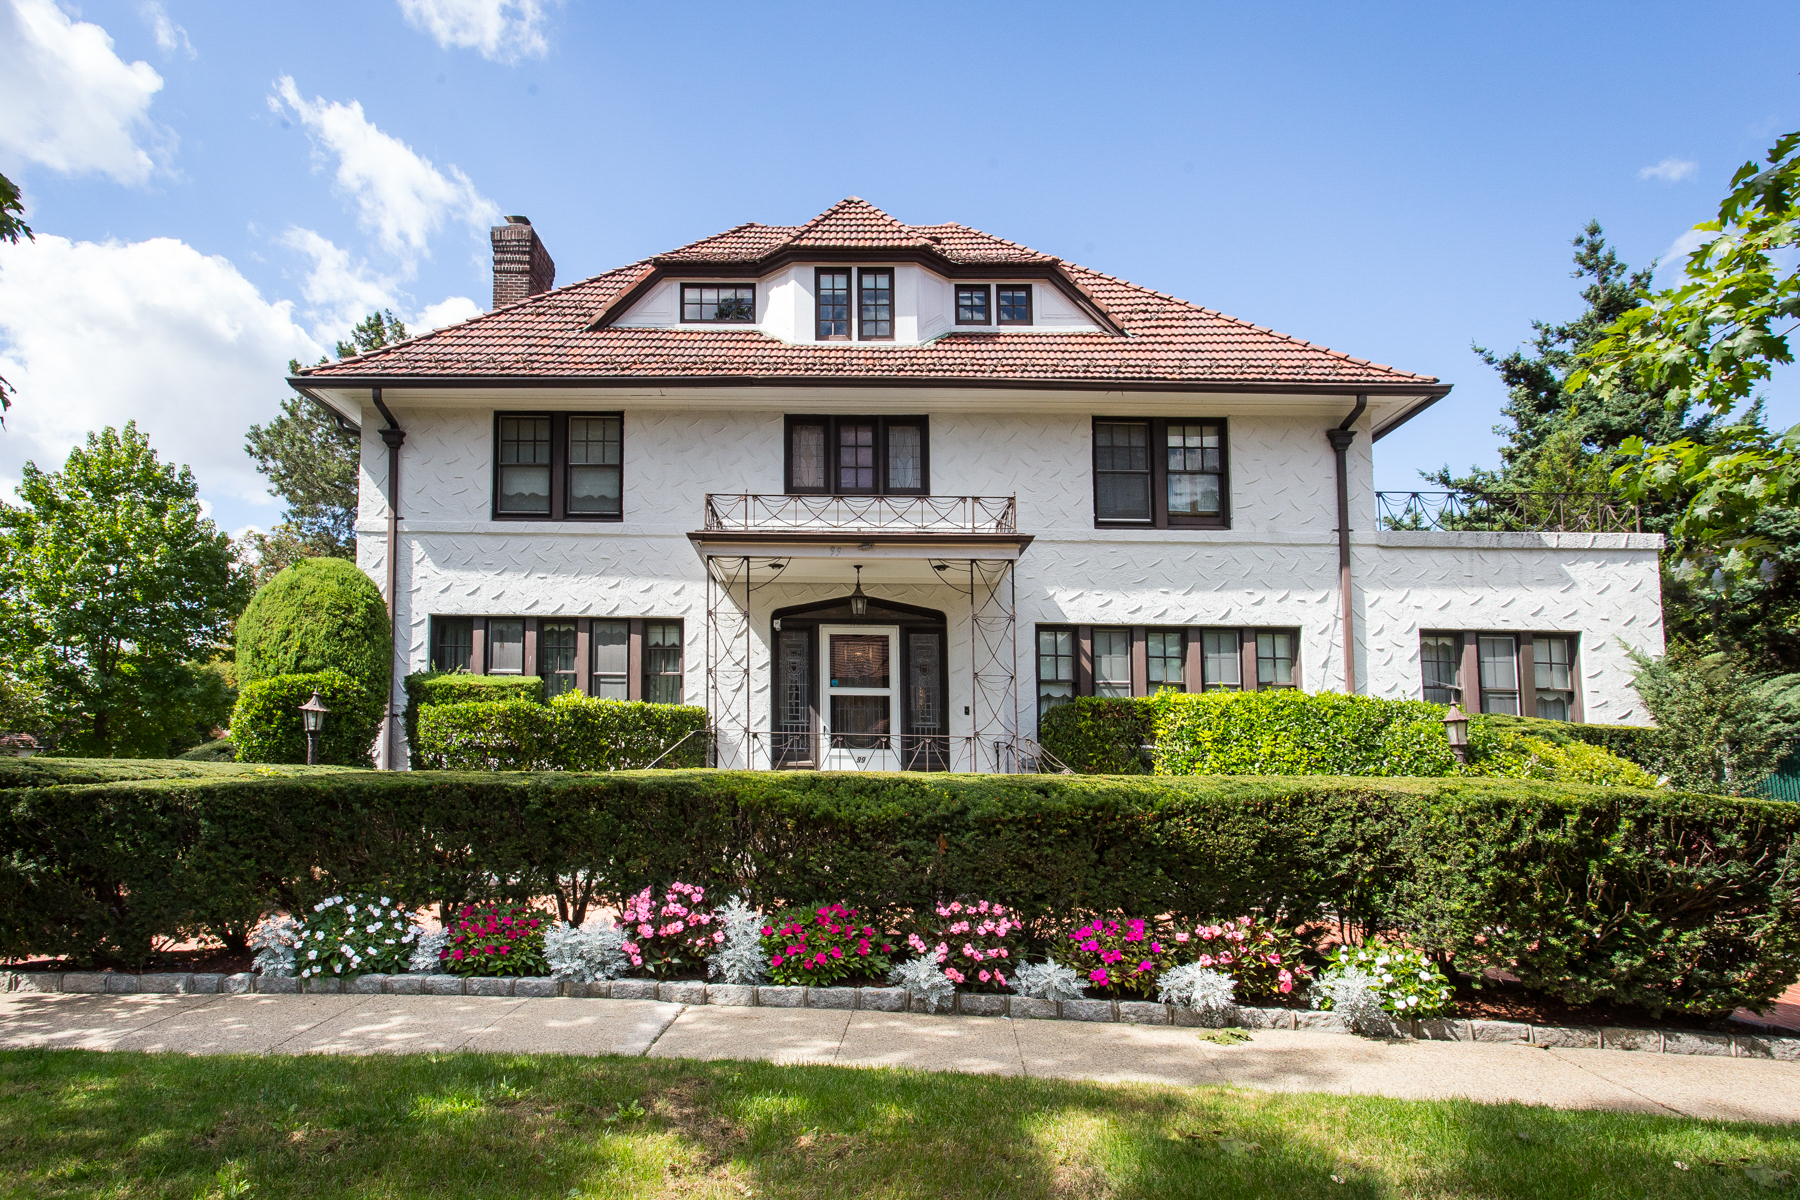 """Single Family Homes for Sale at """"MAGNIFICENT MANOR HOME"""" 99 Tennis Place, Forest Hills Gardens, Queens, New York 11375 United States"""